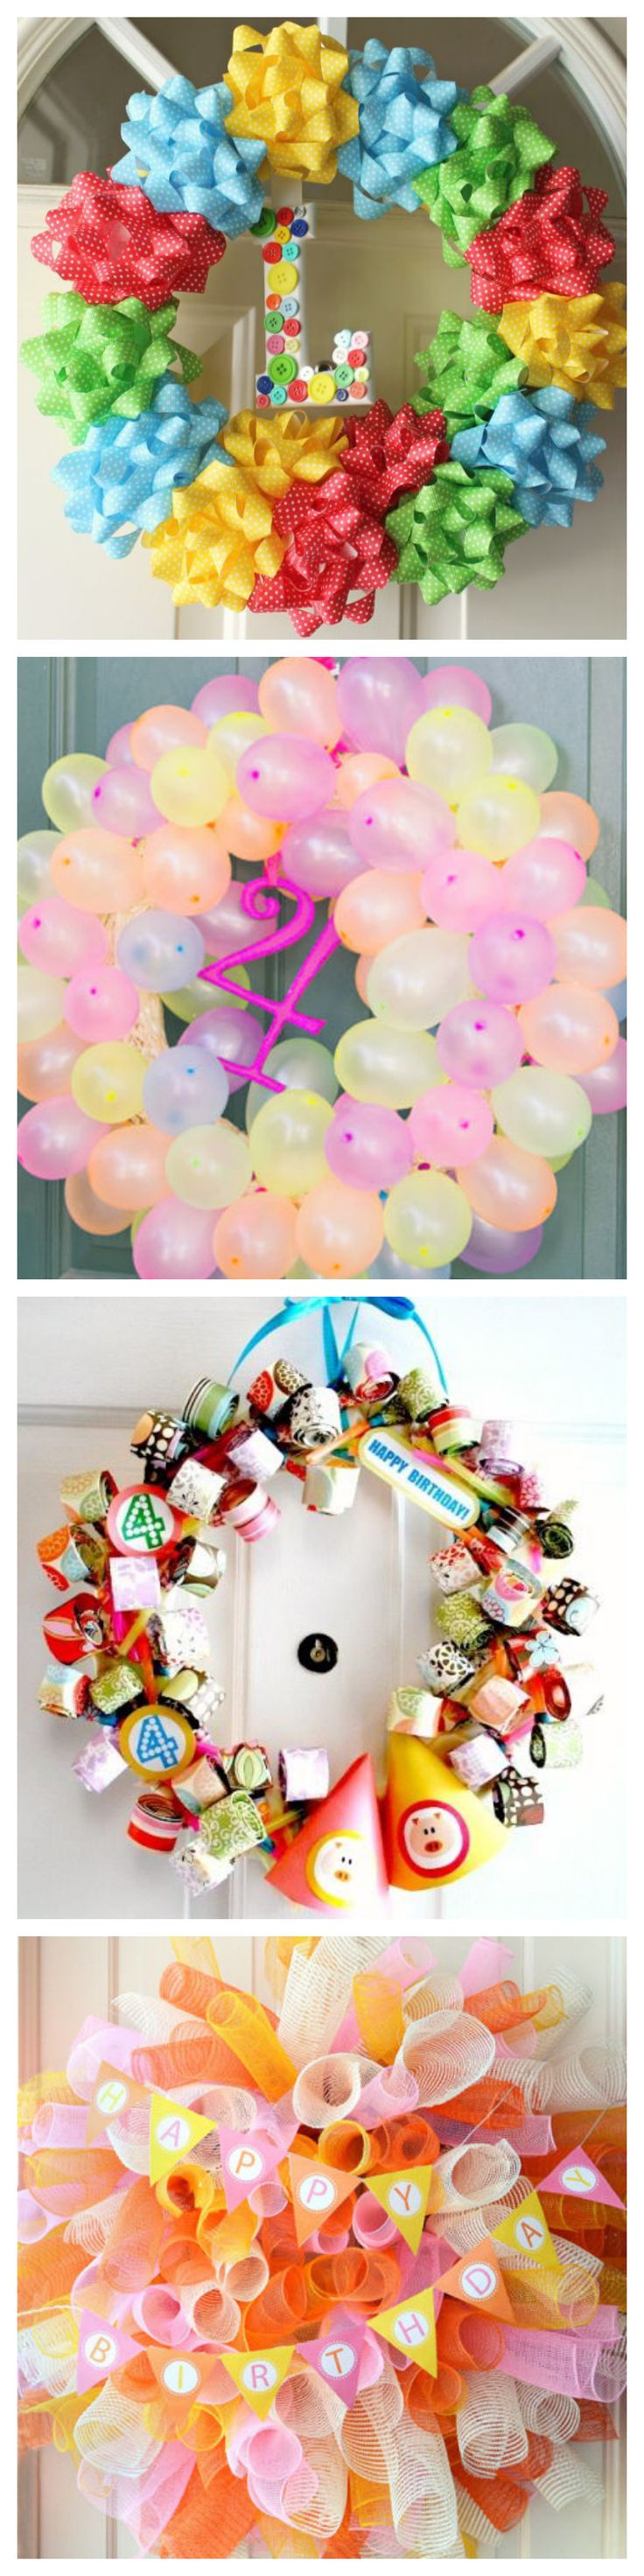 birthday party ideas crafts best 25 birthday presents ideas on 3456